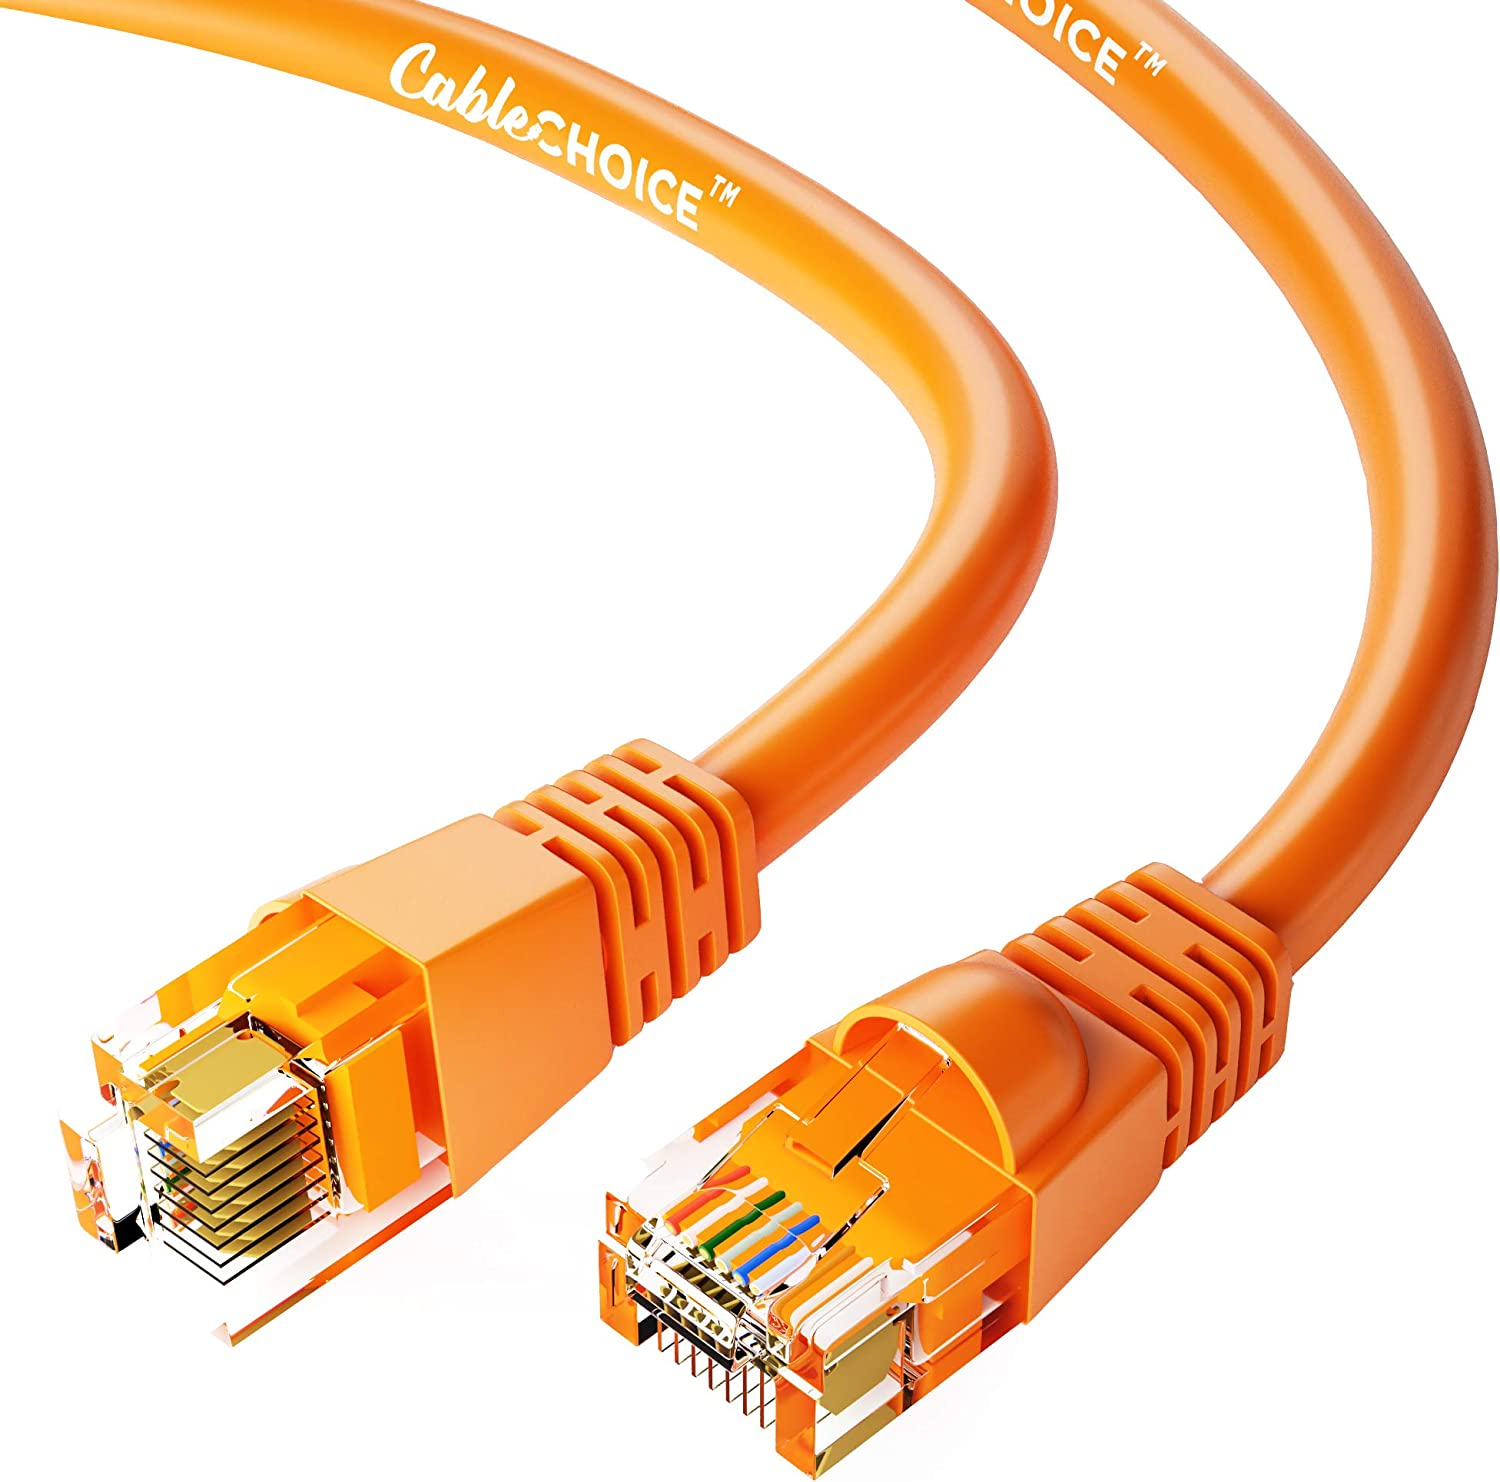 CABLECHOICE free Cat6a Ethernet Cable 50-Pack Orange - Feet 24 Popular standard 35